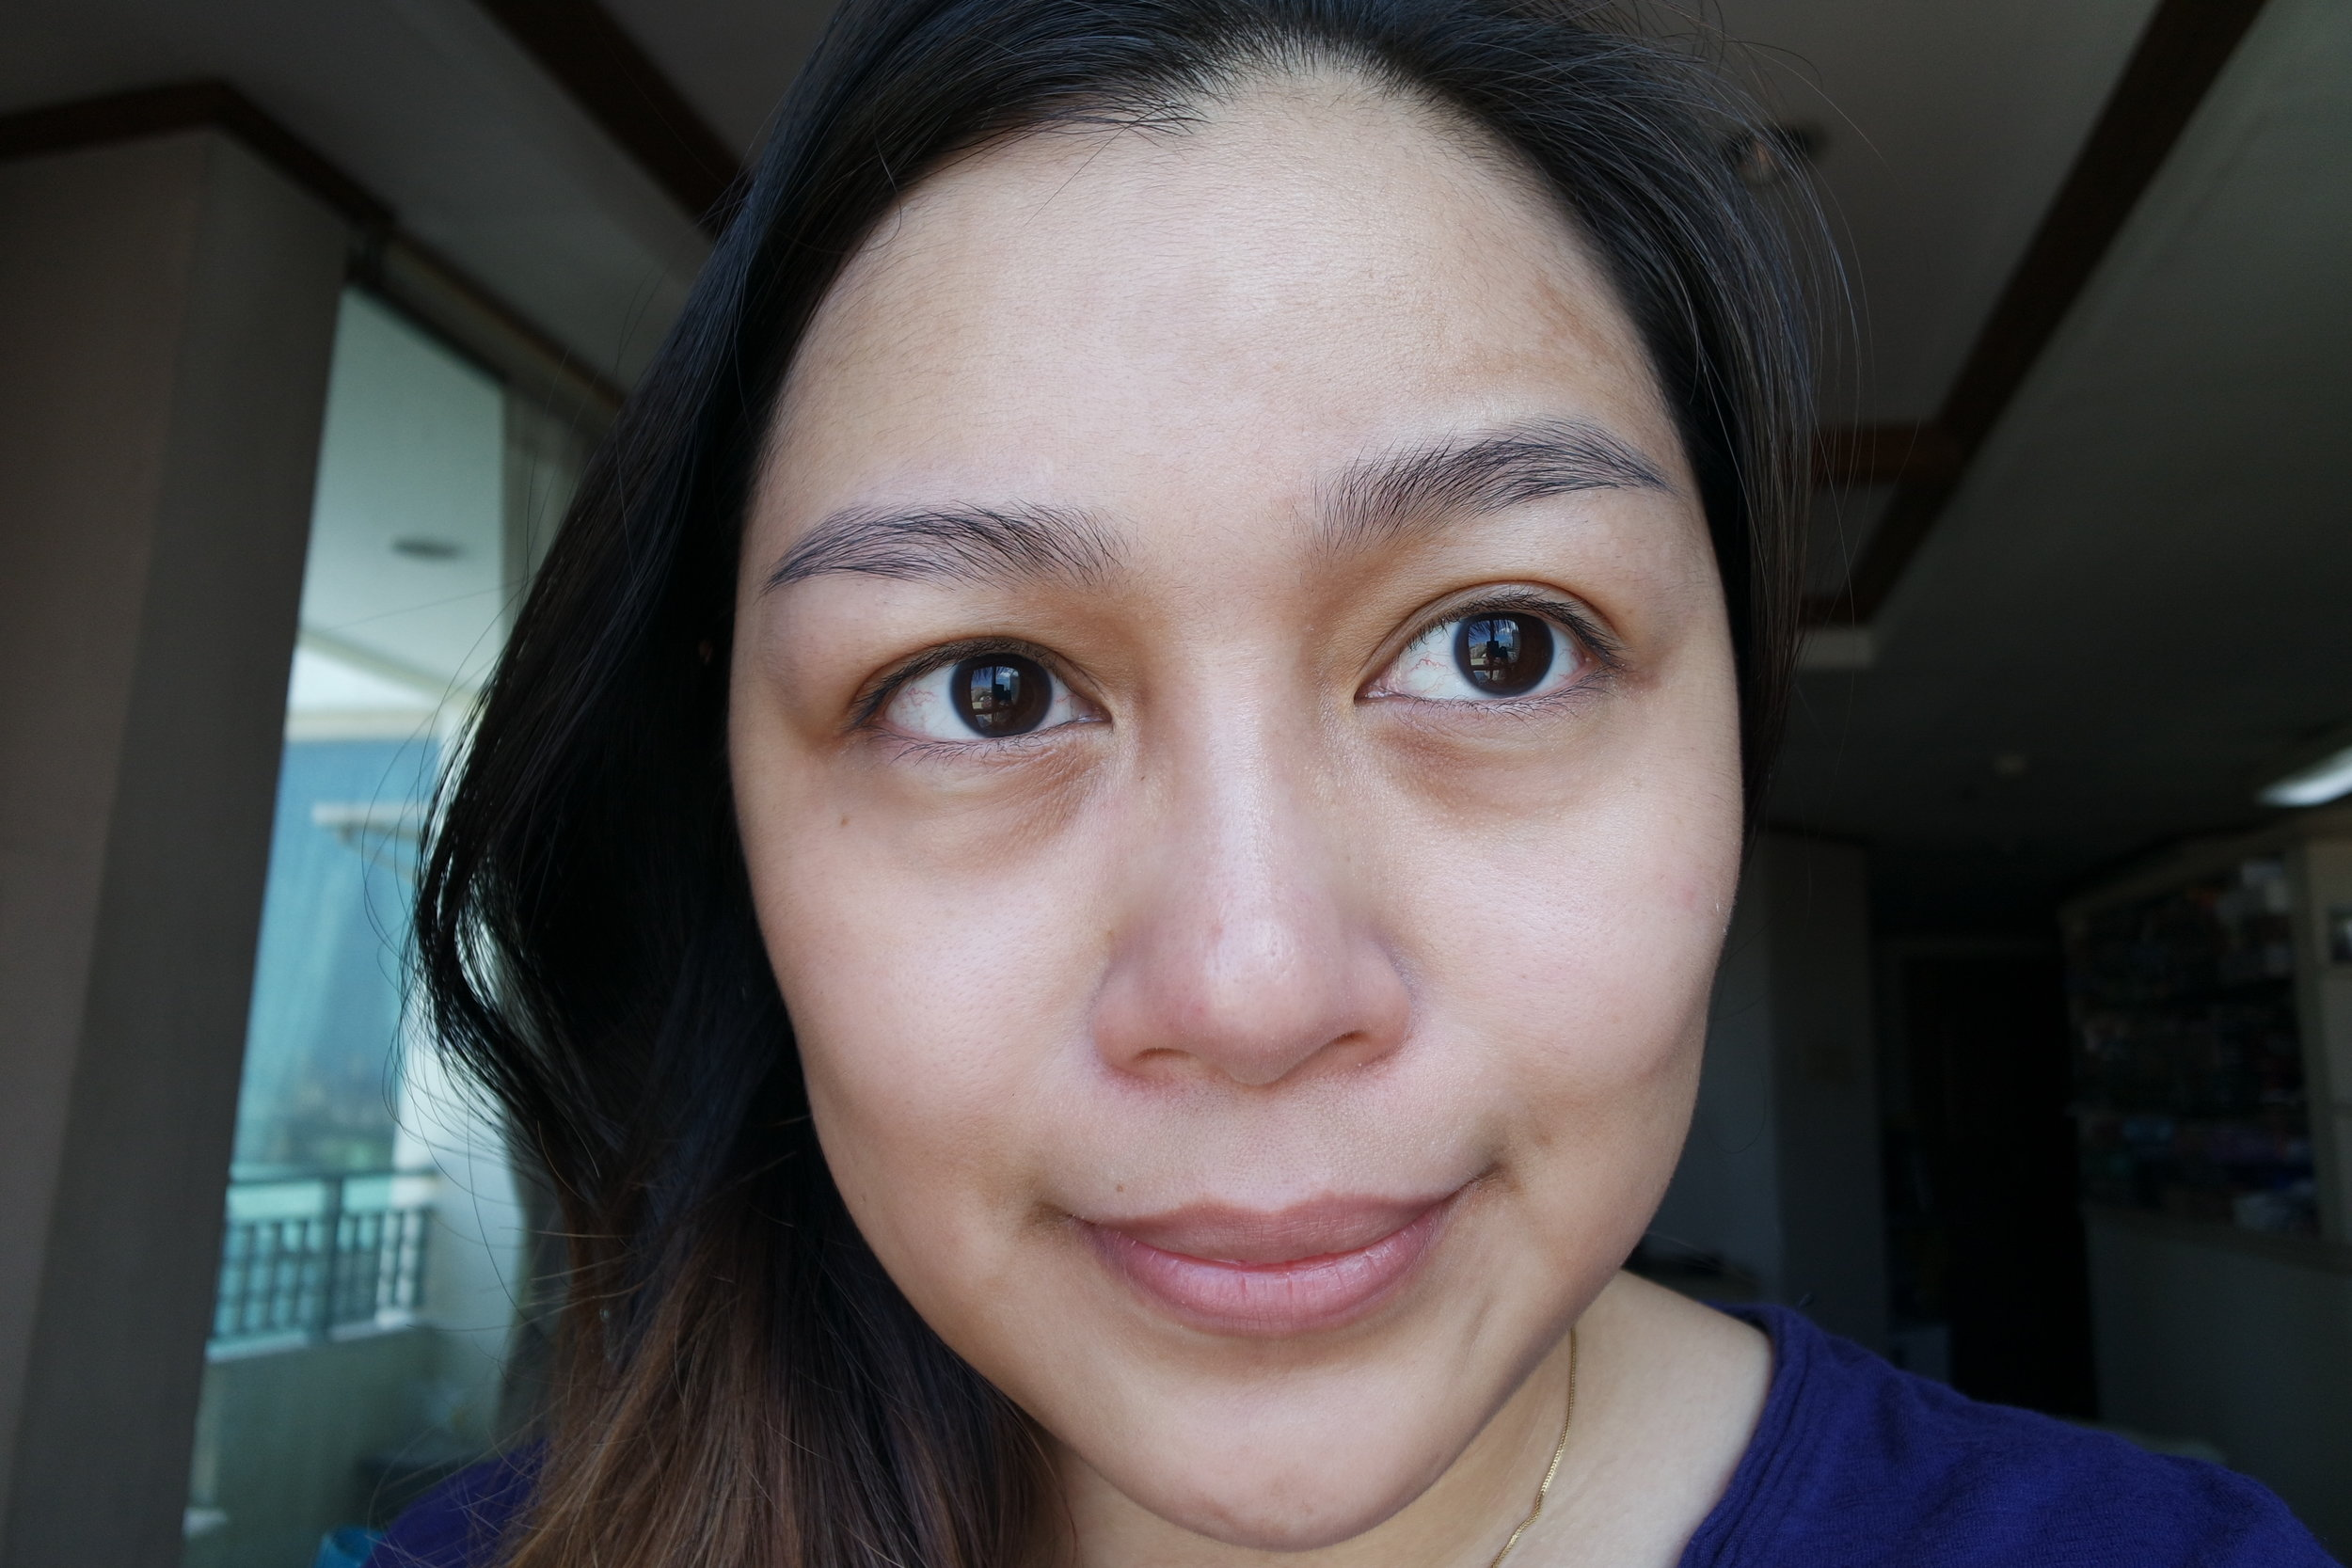 Bare face, wearing the Face Sunblock on the left and the Kids Sunblock on the right